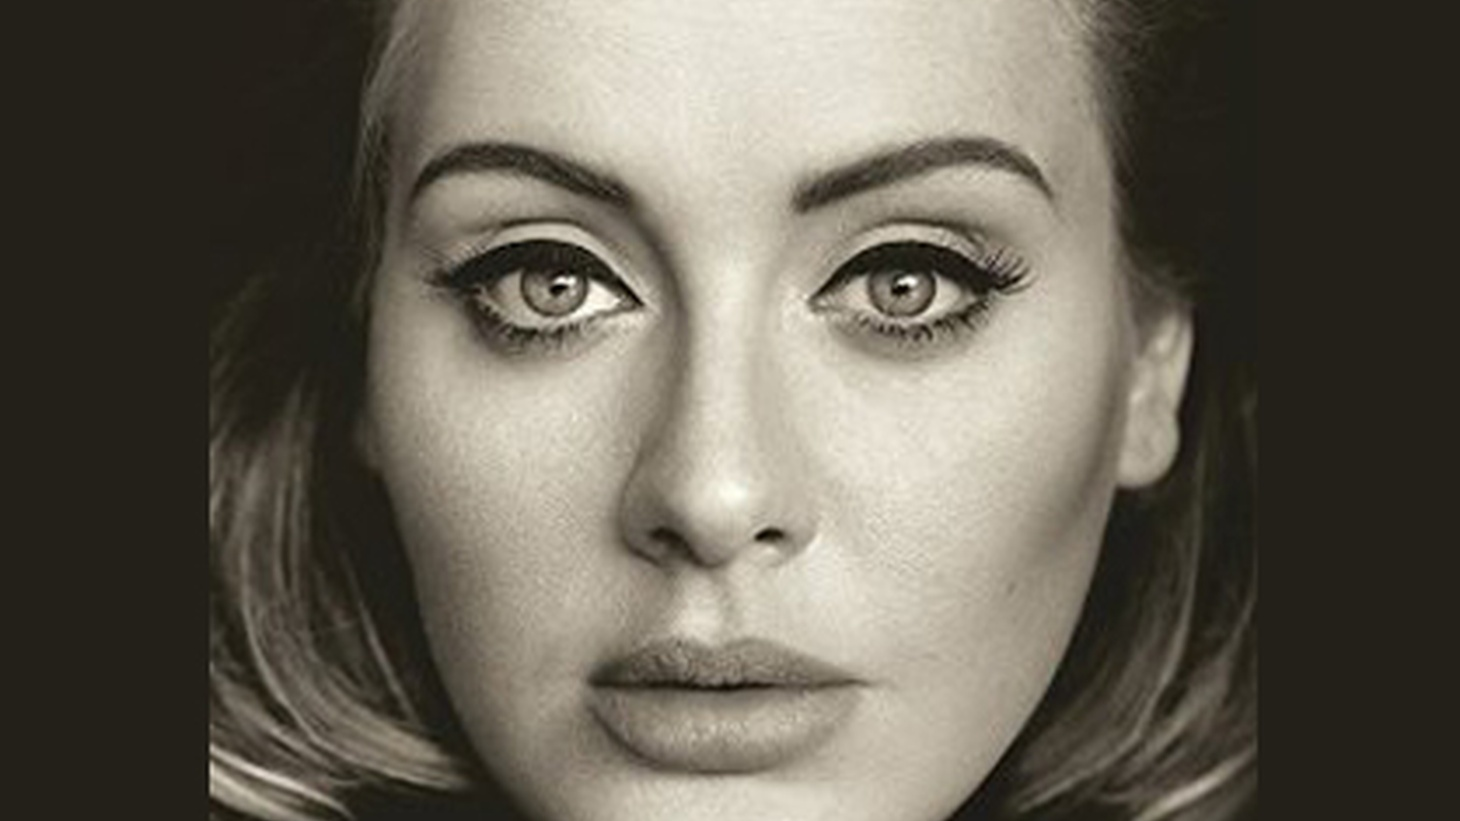 Adele's new album, 25, has broken the music industry's record for most albums sold in a single week. And the week is barely halfway through! The record, released on Friday, has already sold more than 2 million copies. Only one other album has done that since Nielsen began tracking sales in 1991: N*SYNC's No Strings Attached, in 2000.